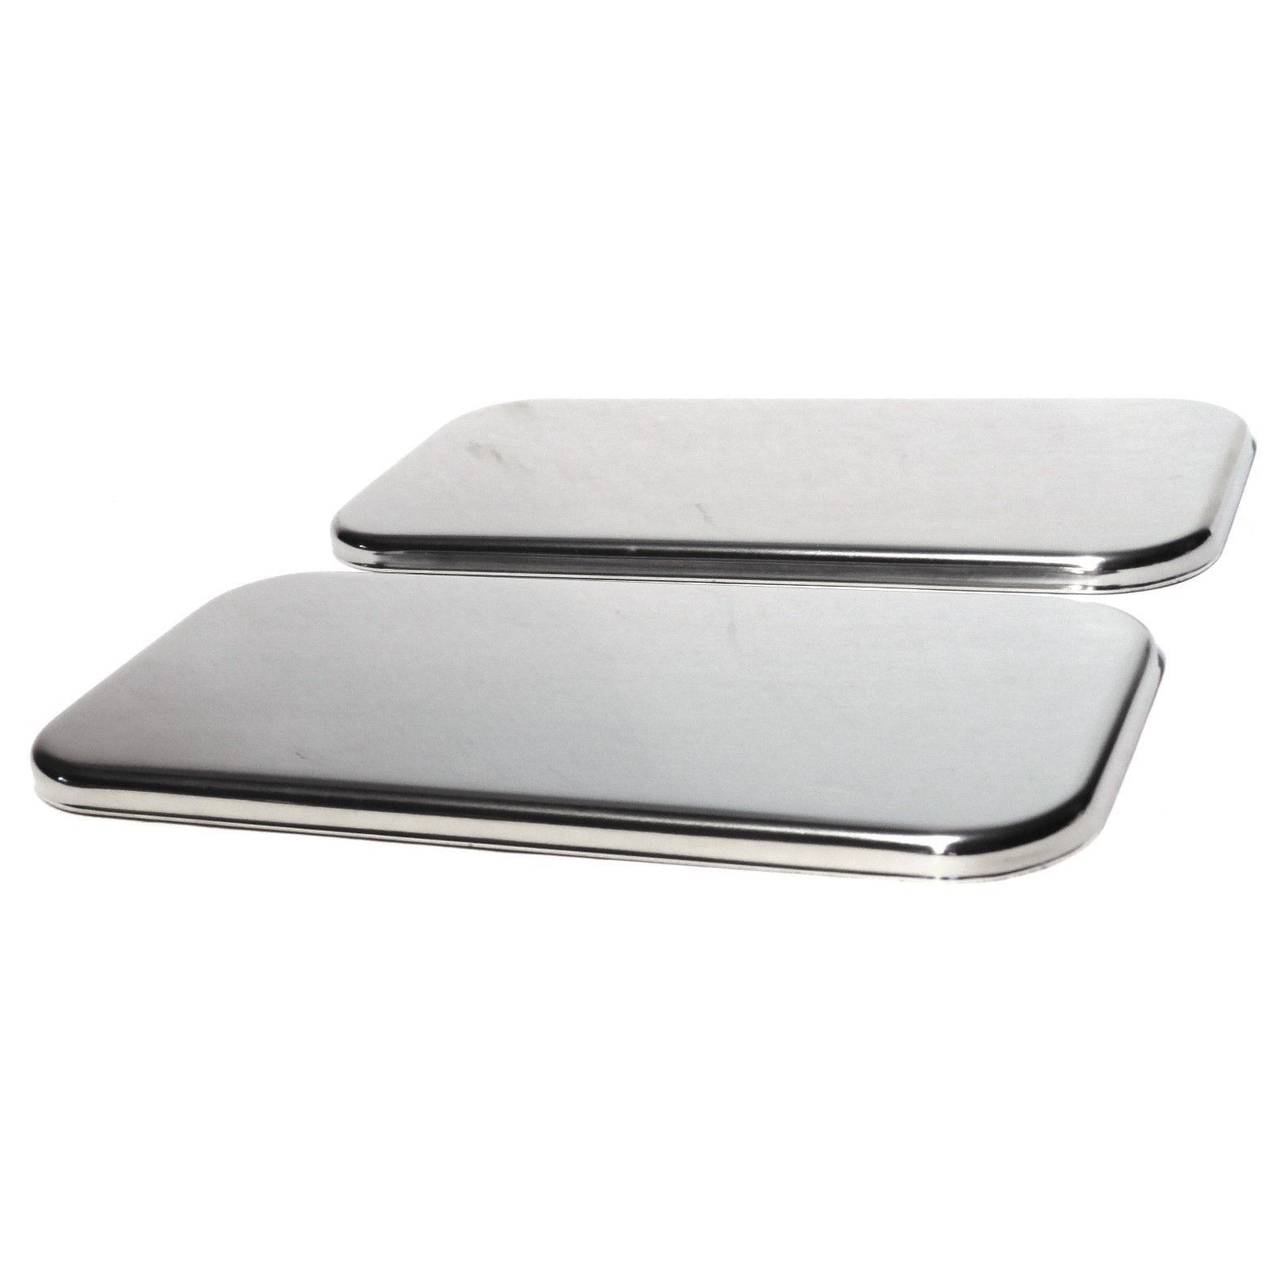 Sleeper vent door plain stainless steel covers for Freightliner Century Classic, Pair